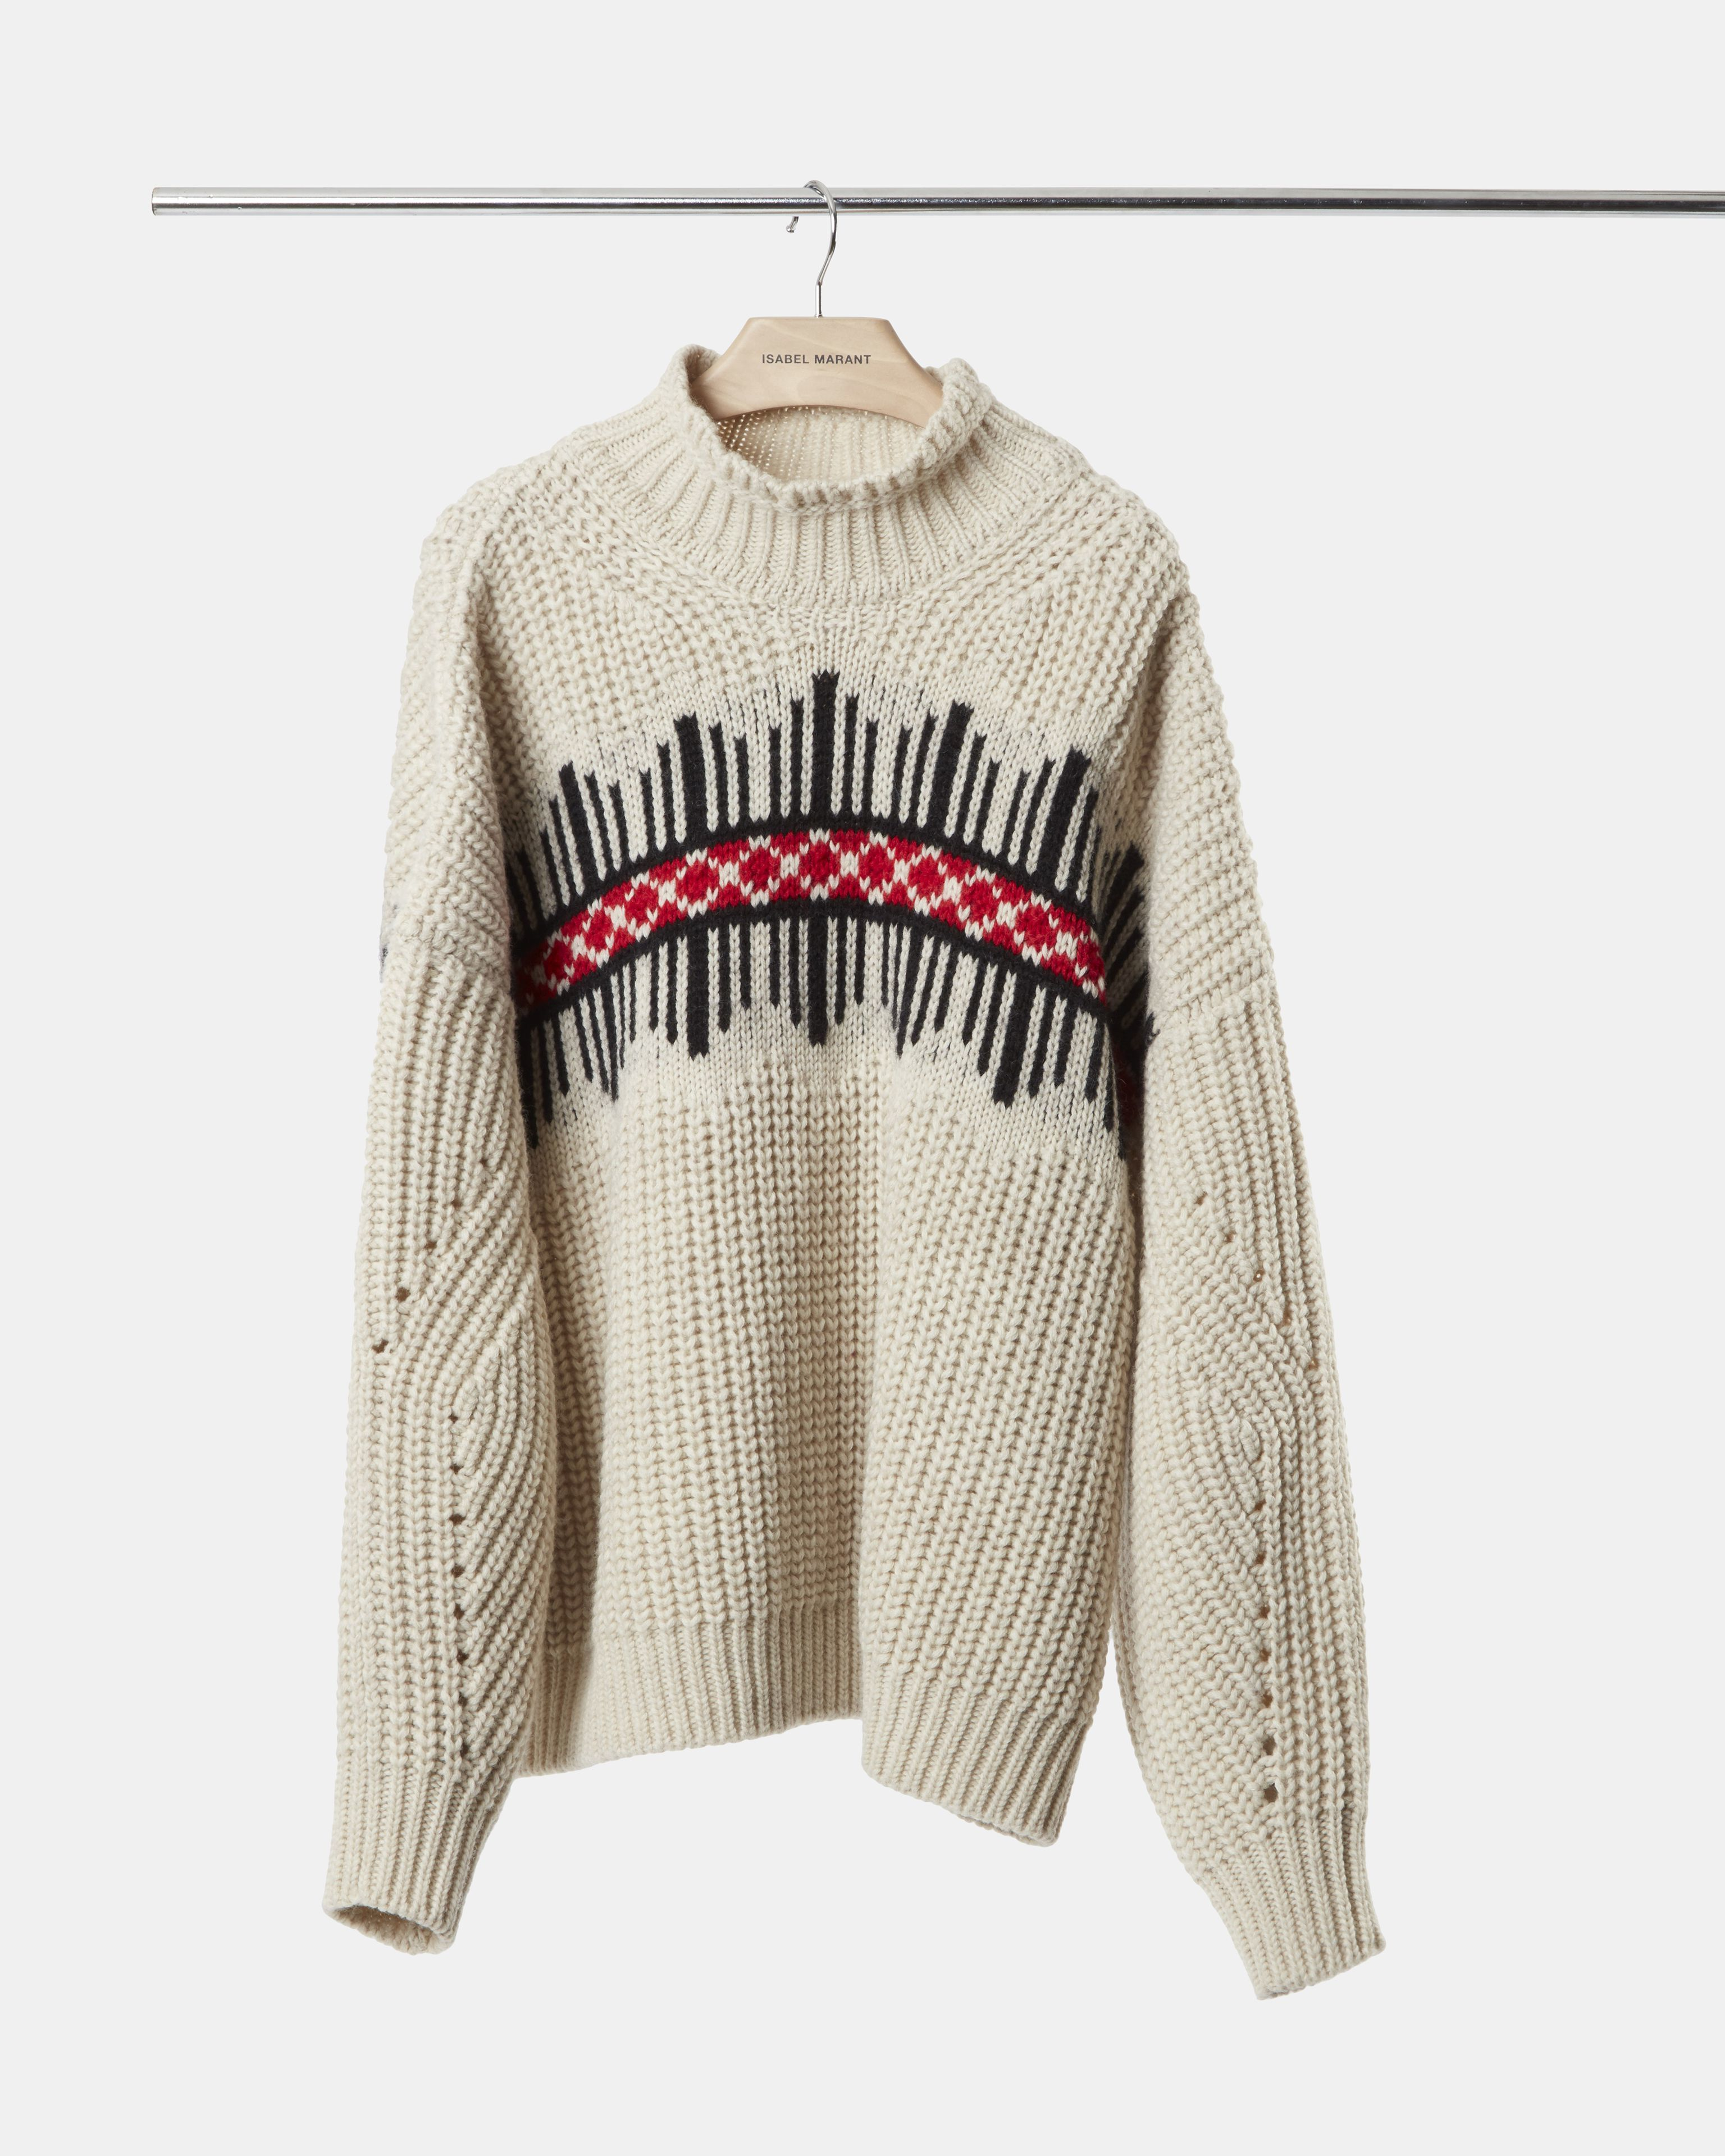 CLOTIL graphic jumper